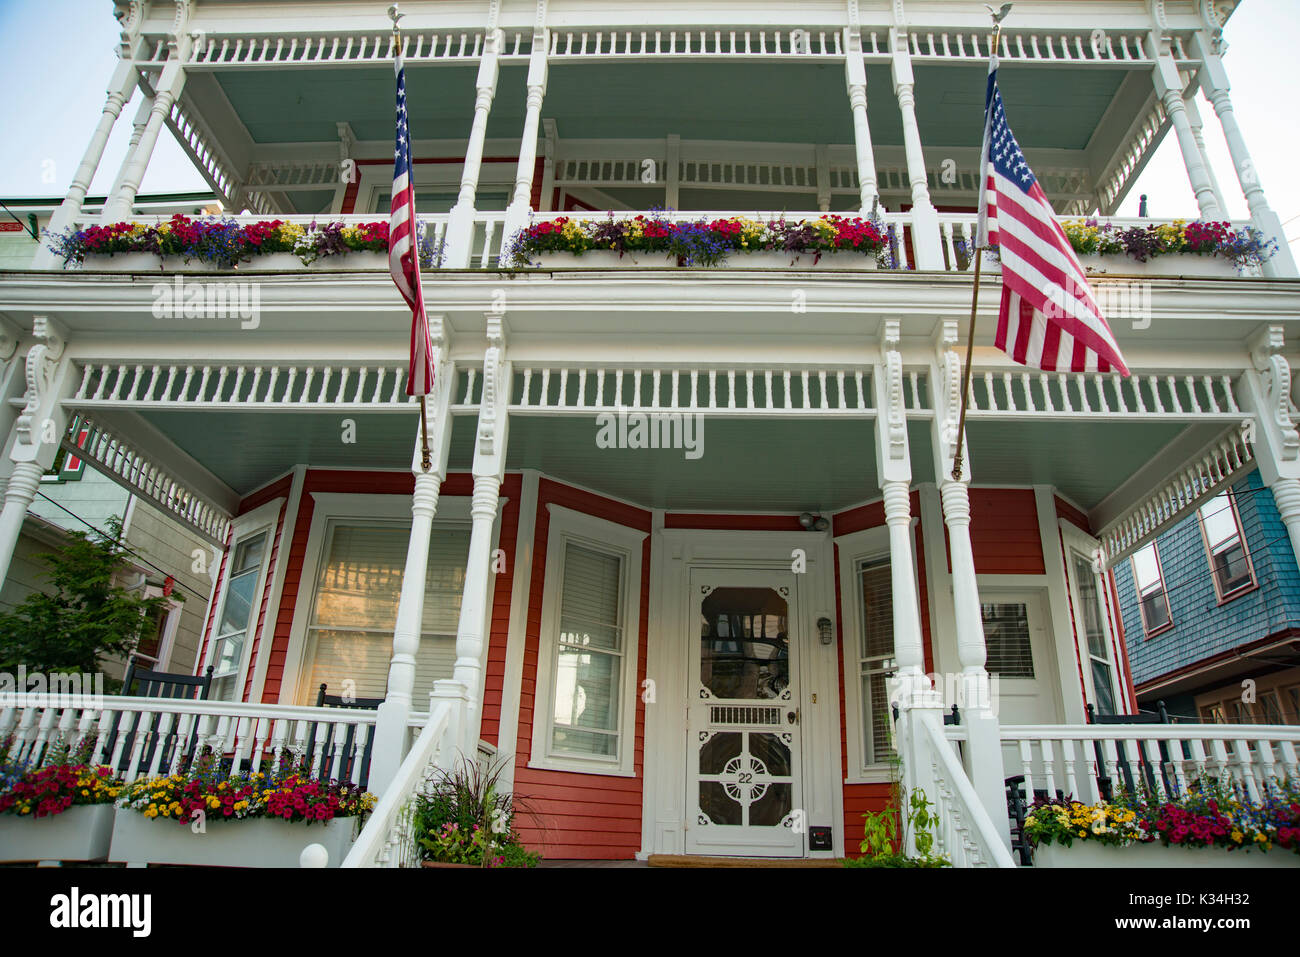 Queen Anne style Victorian home Architecture at beach Town Cape May, New Jersey. Front entrance with beautiful columns. - Stock Image